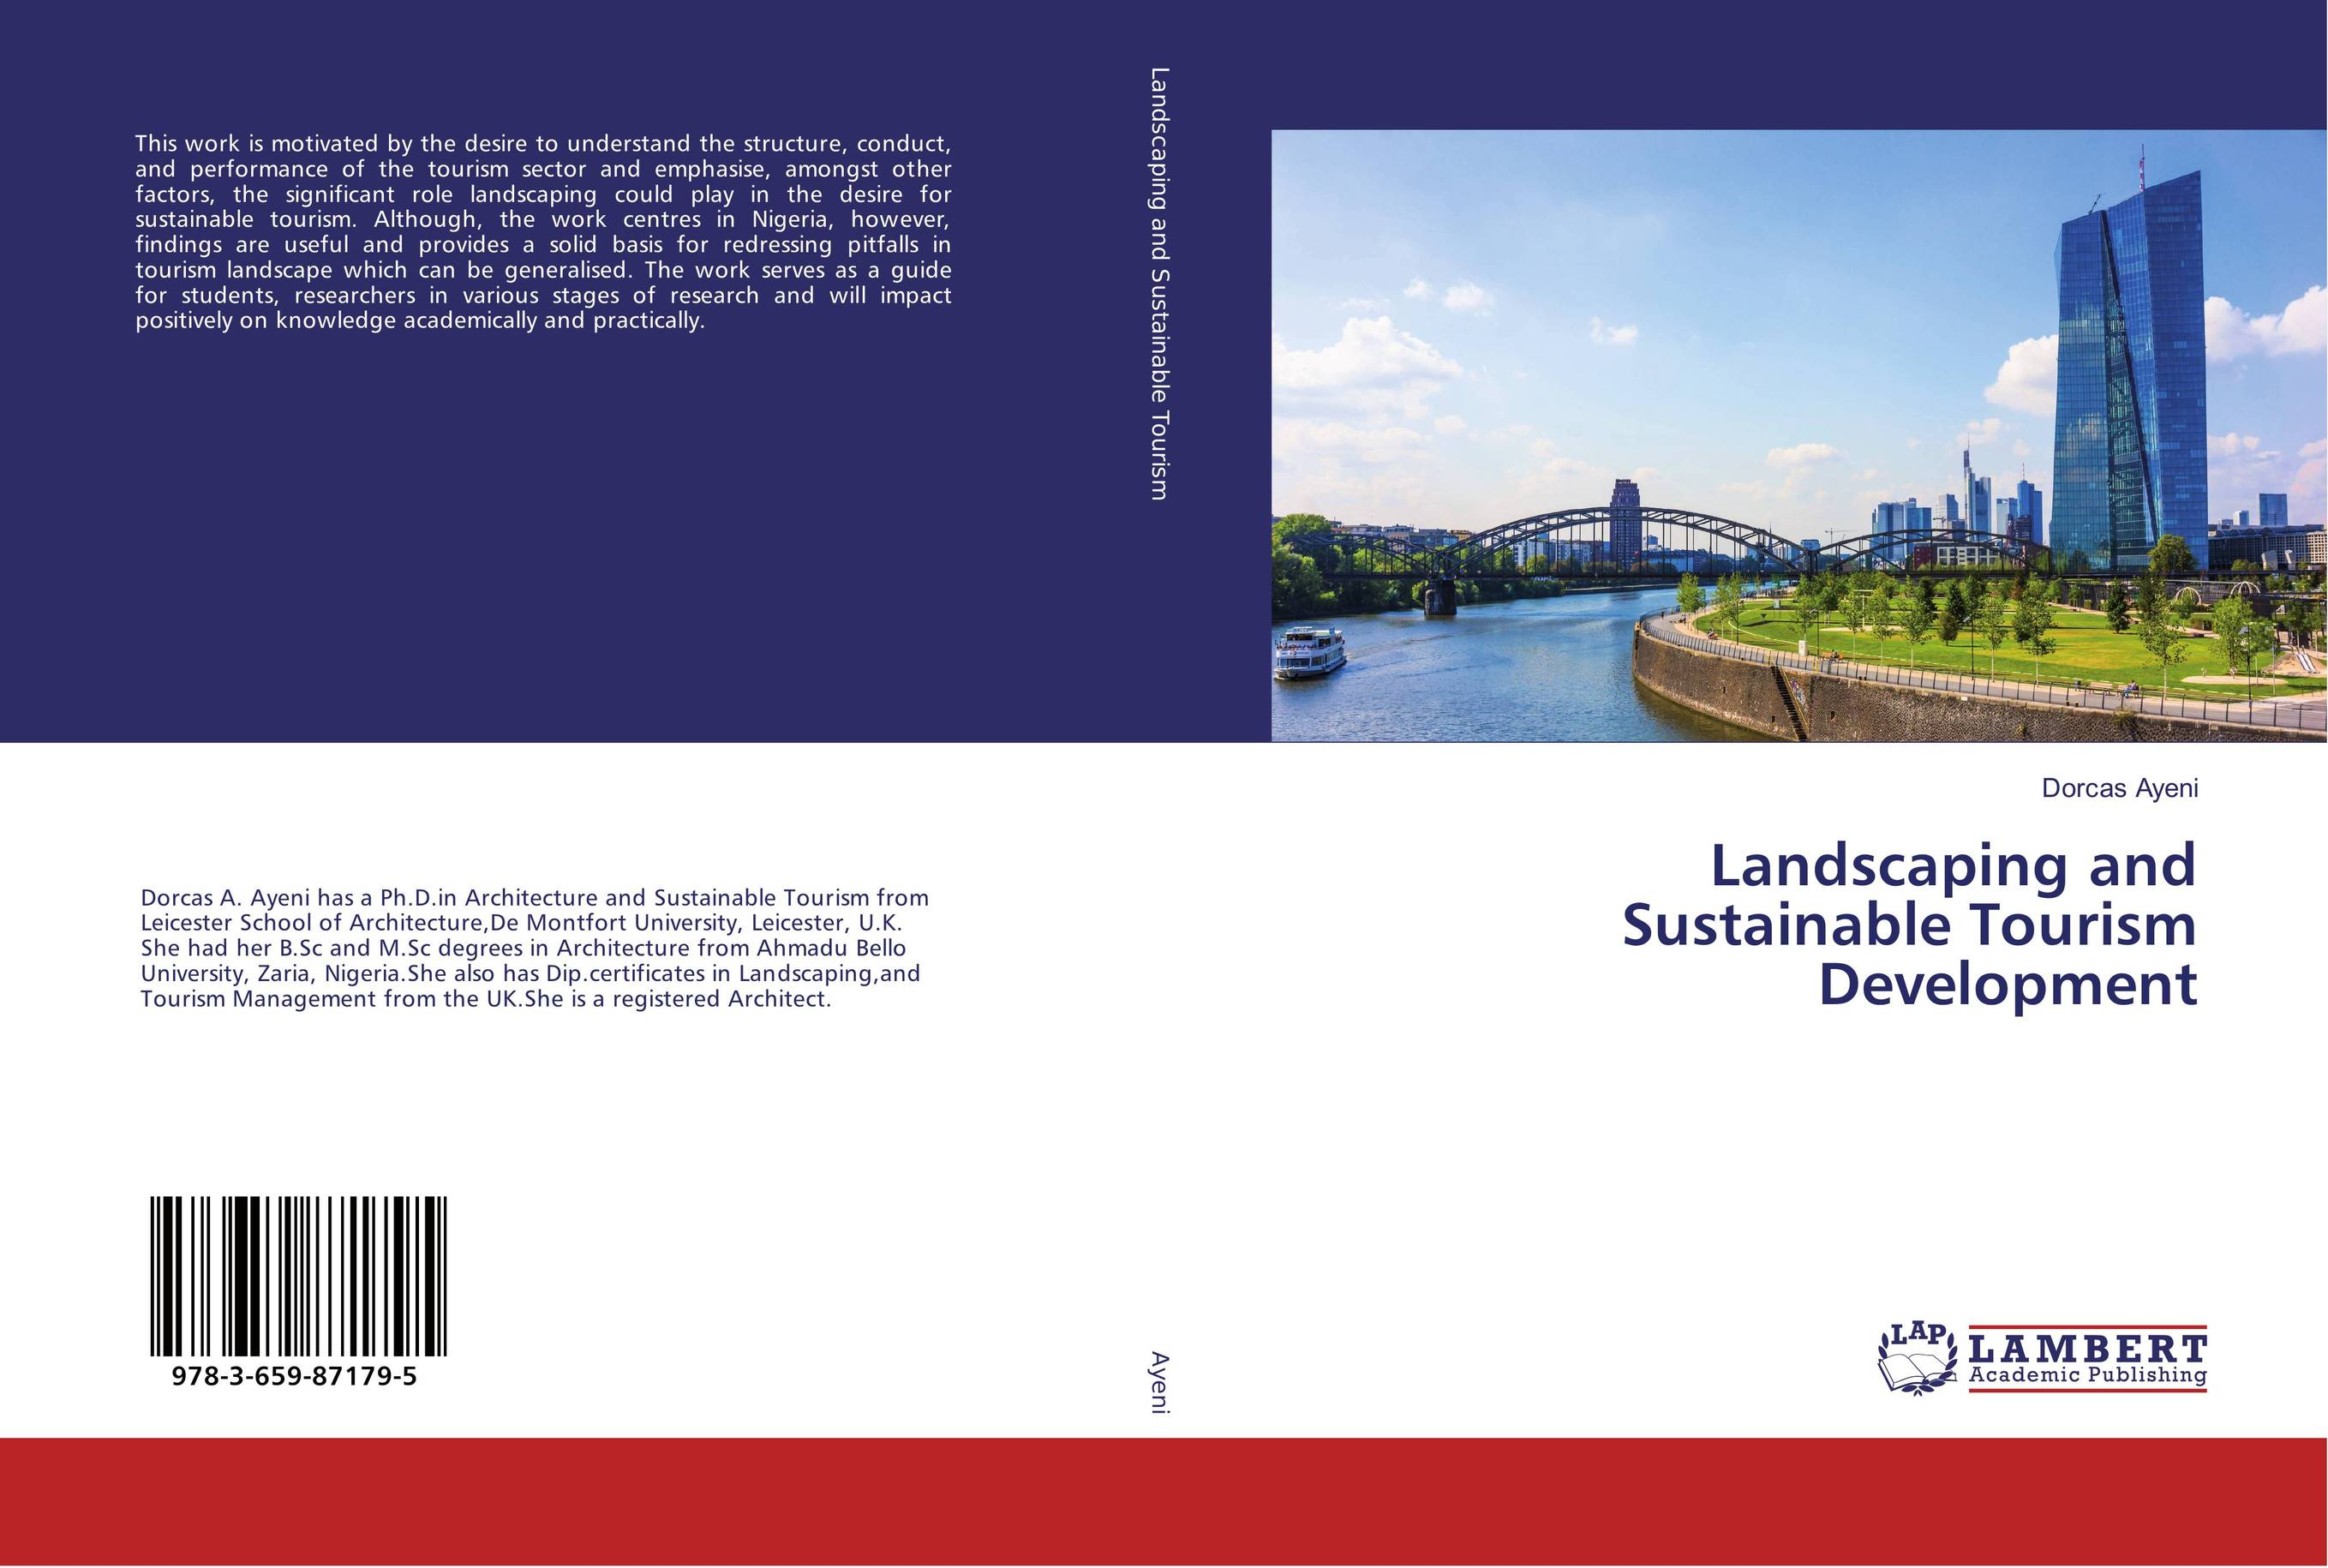 Landscaping and Sustainable Tourism Development olorunfemi samuel oluwaseyi tourism development in nigeria